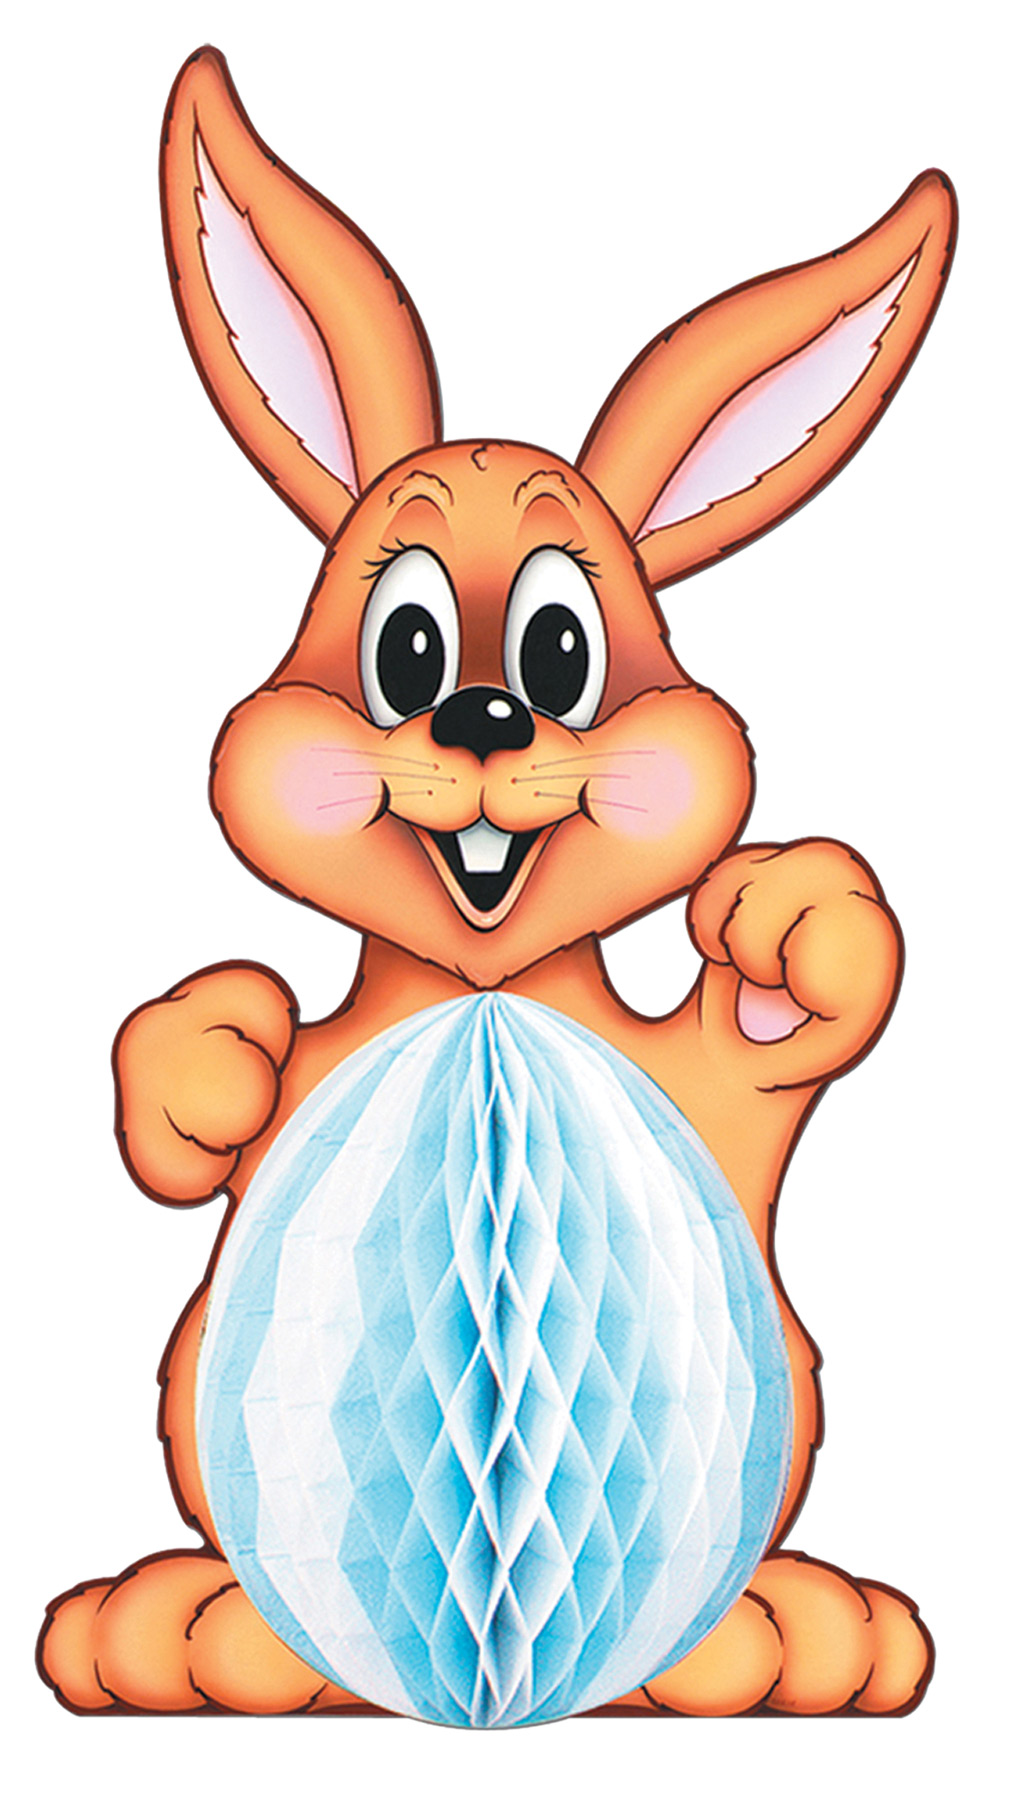 Featured Image for Large Tissue Bunny